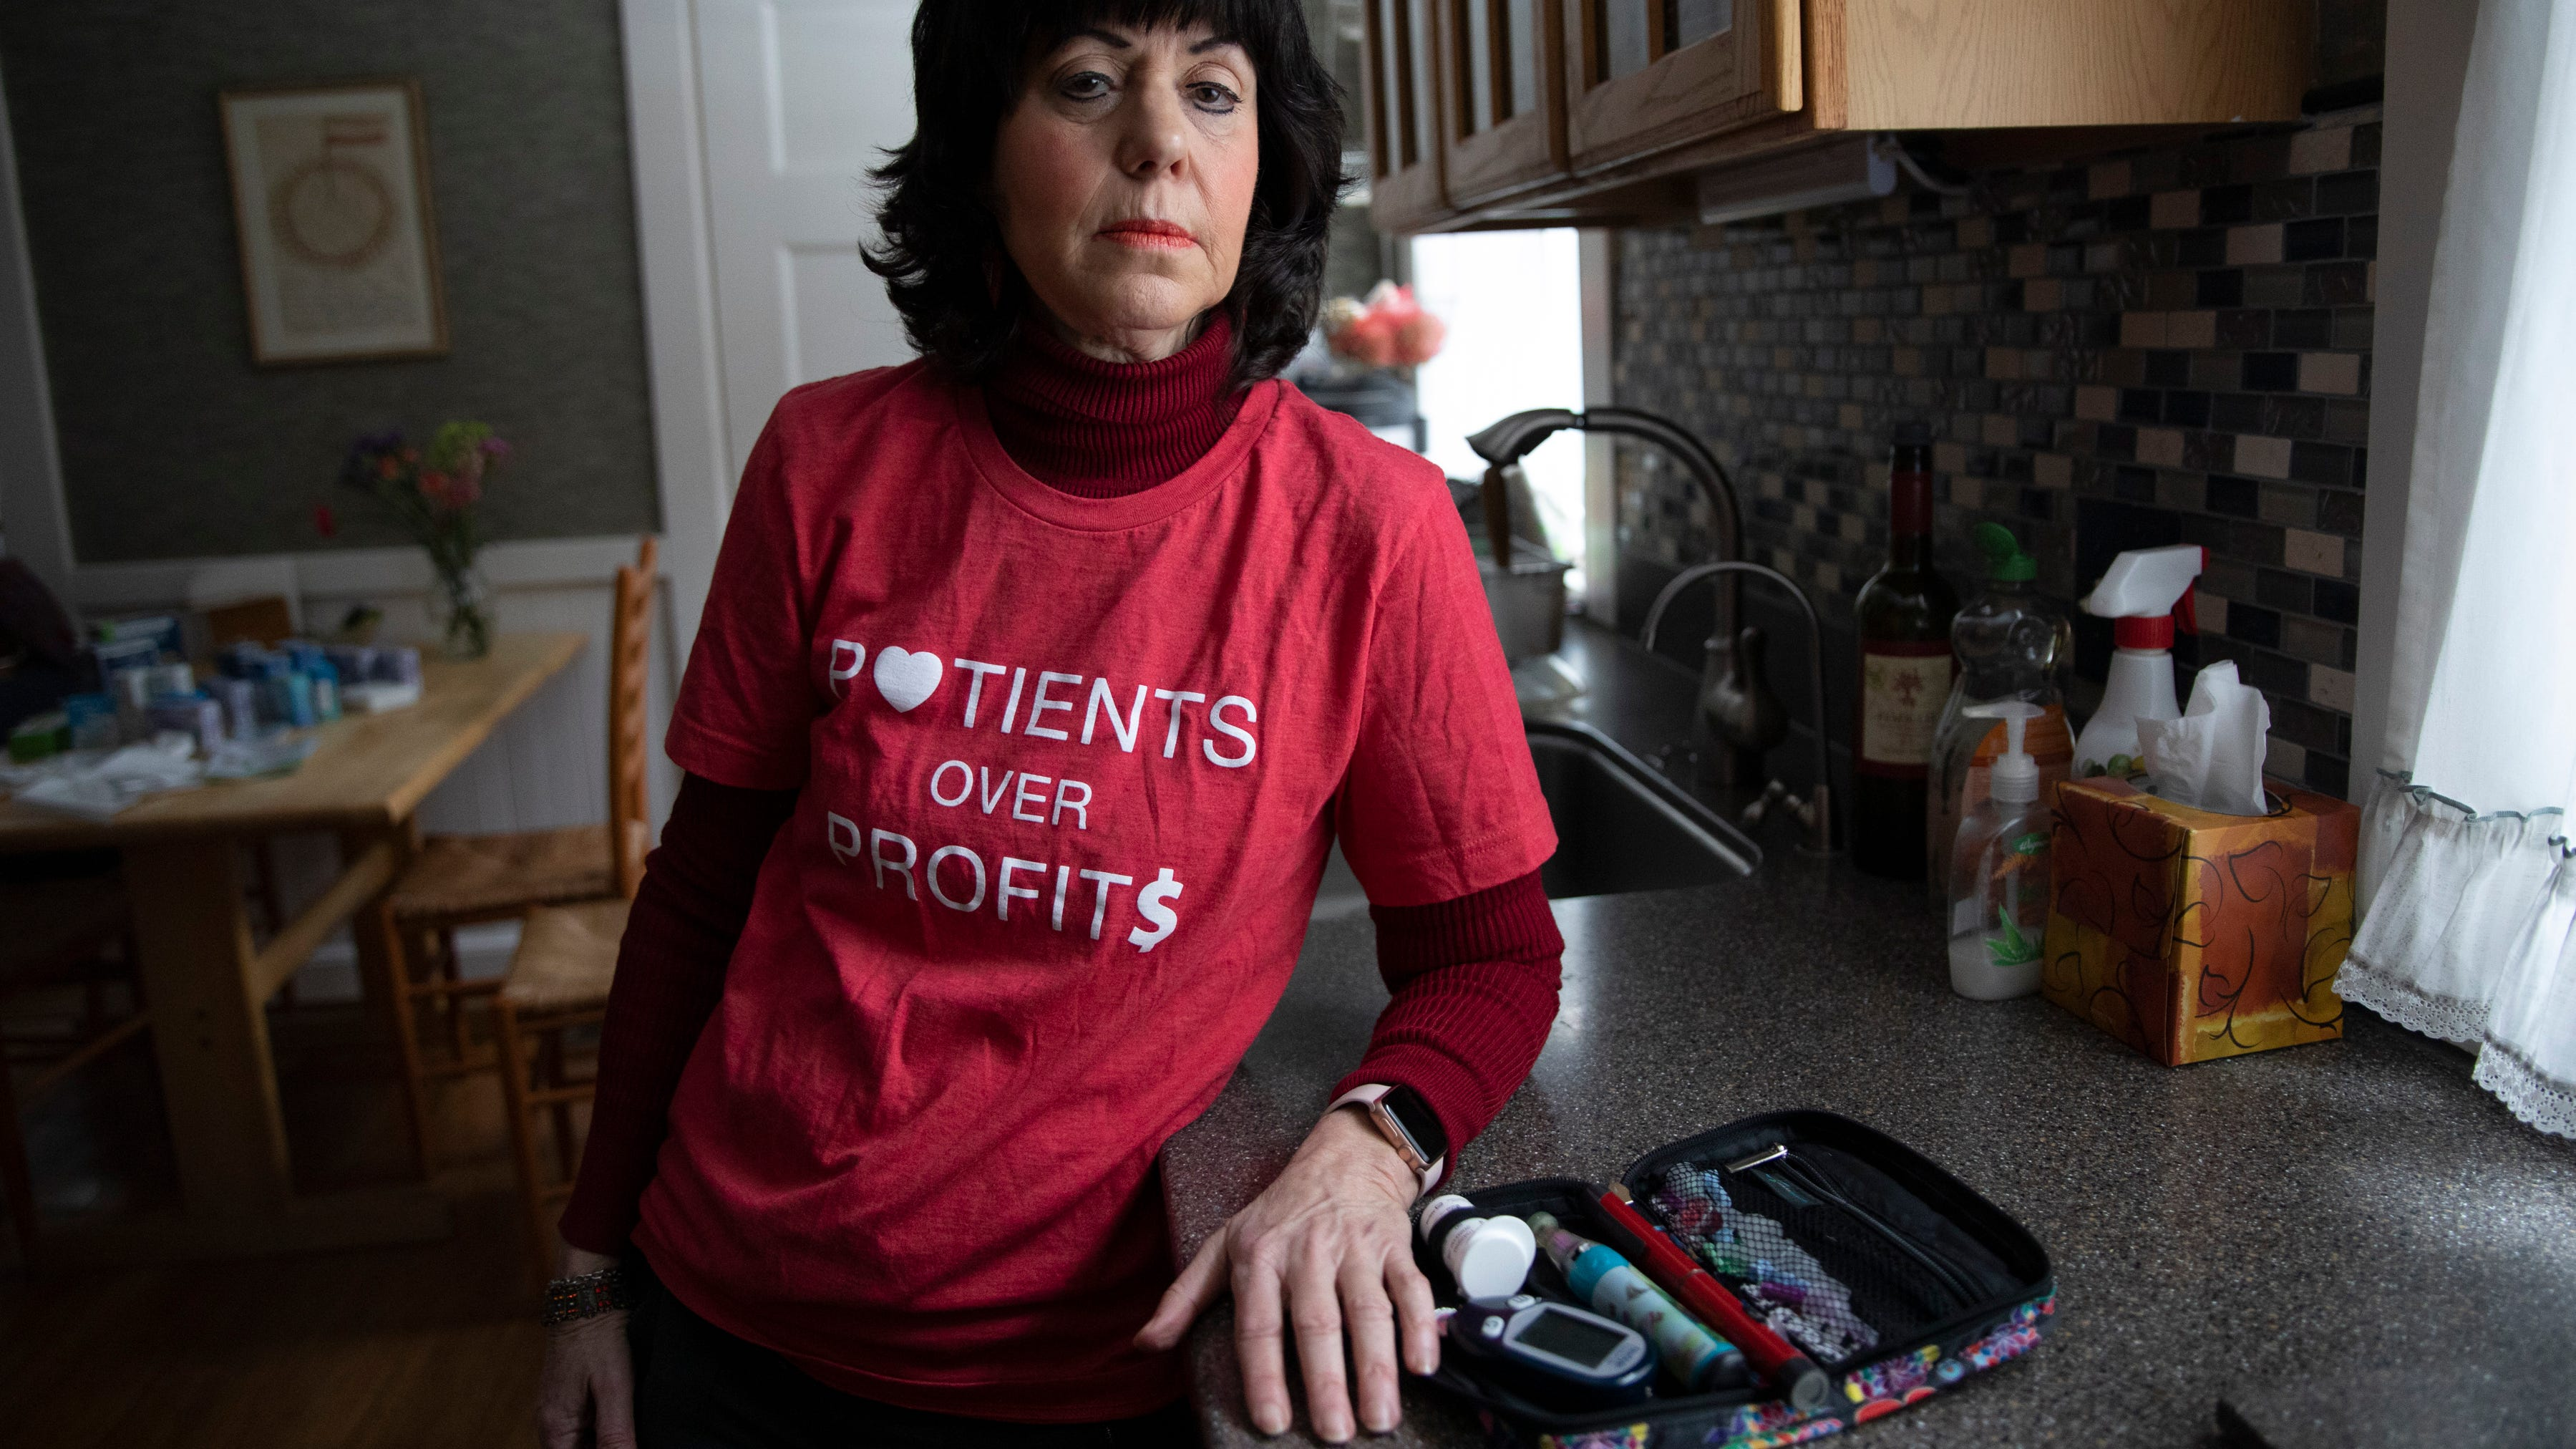 Diedre Waxman lives in Newton, Mass. and has type 1 diabetes. Diagnosed six years ago, Waxman has adopted a strict diet so she doesn't need as much insulin. Despite drastically changing her lifestyle, she still can't afford insulin so she chooses to purchase it from Canada.